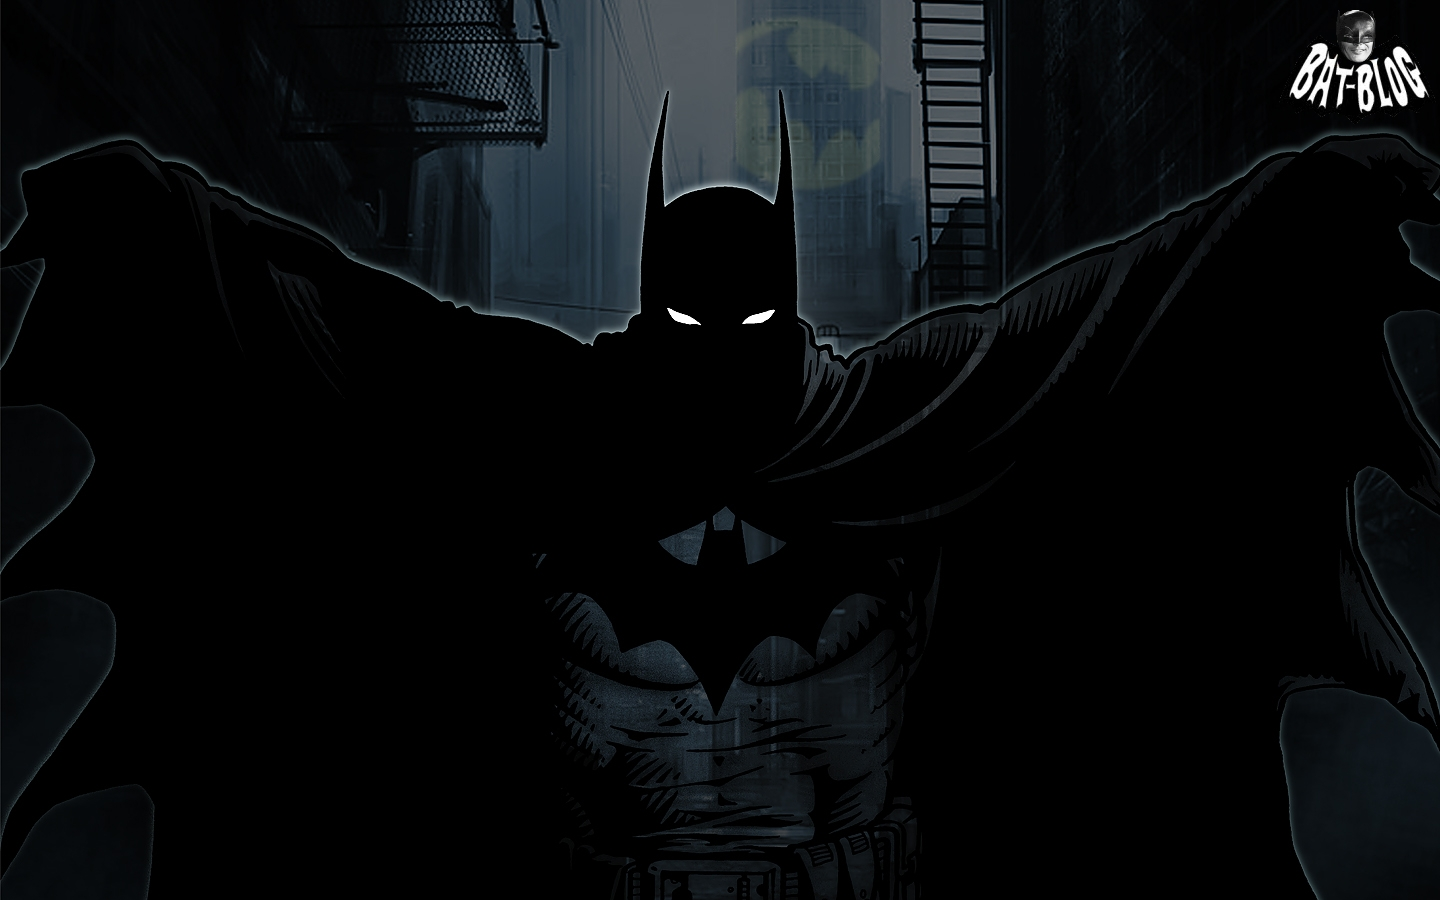 BATMAN TOYS and COLLECTIBLES Cool BATMAN WALLPAPER By Graphic Artist 1440x900